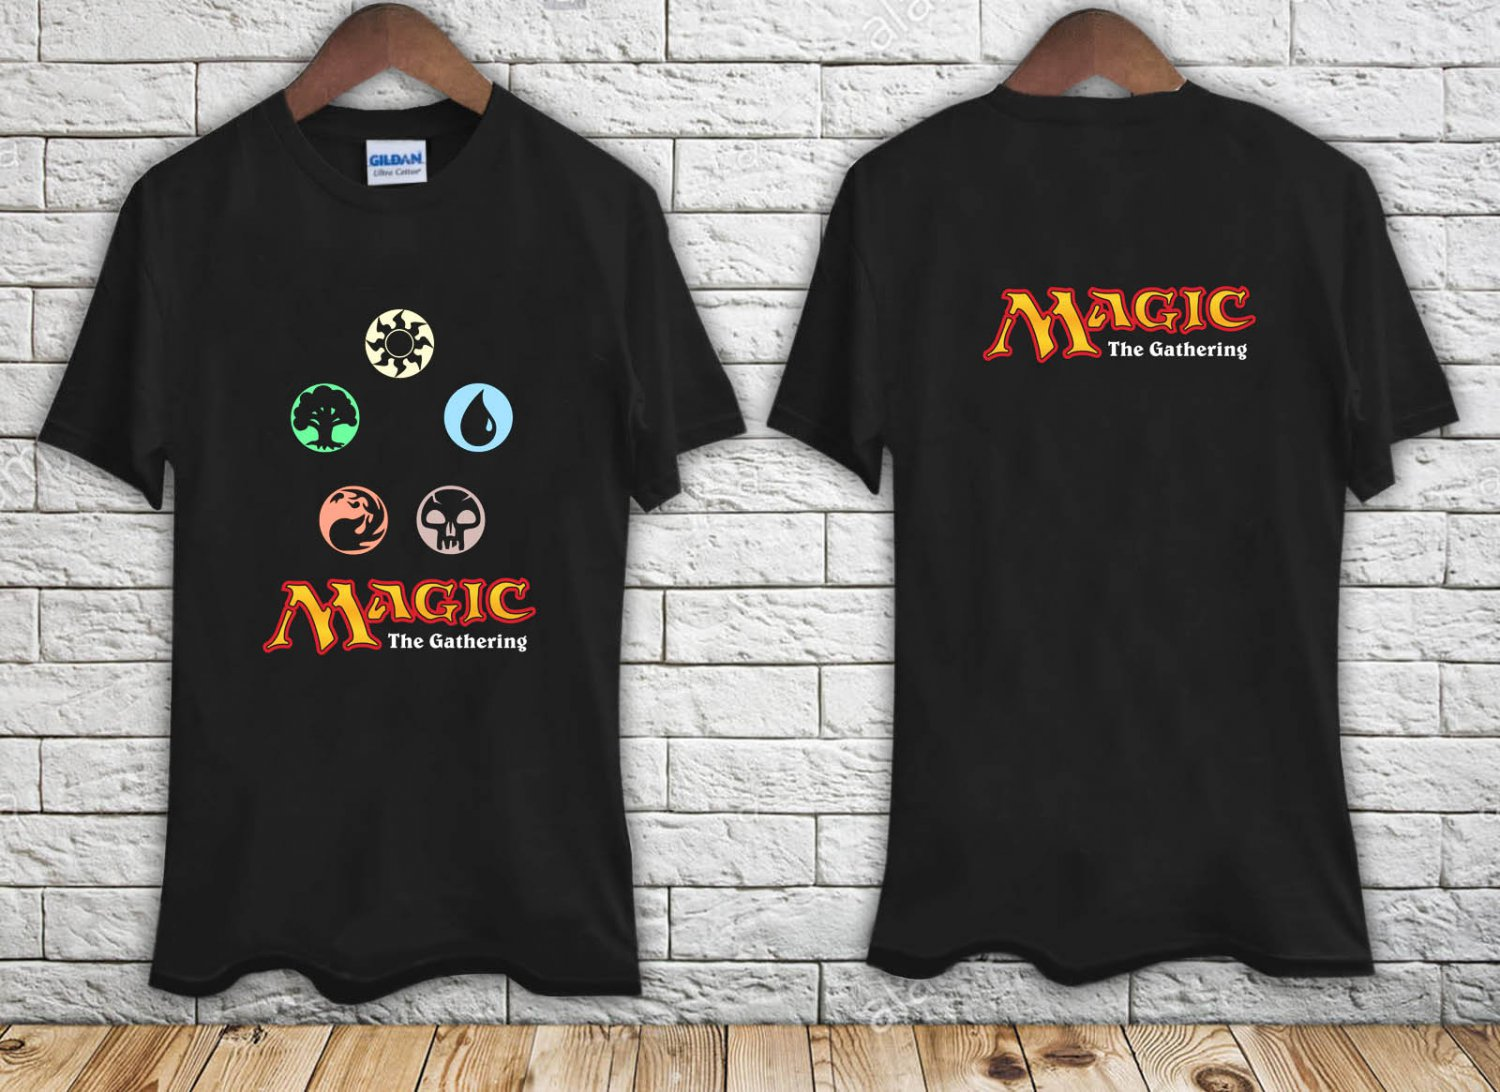 Magic The Gathering Logo black t-shirt tshirt shirts tee SIZE 2XL